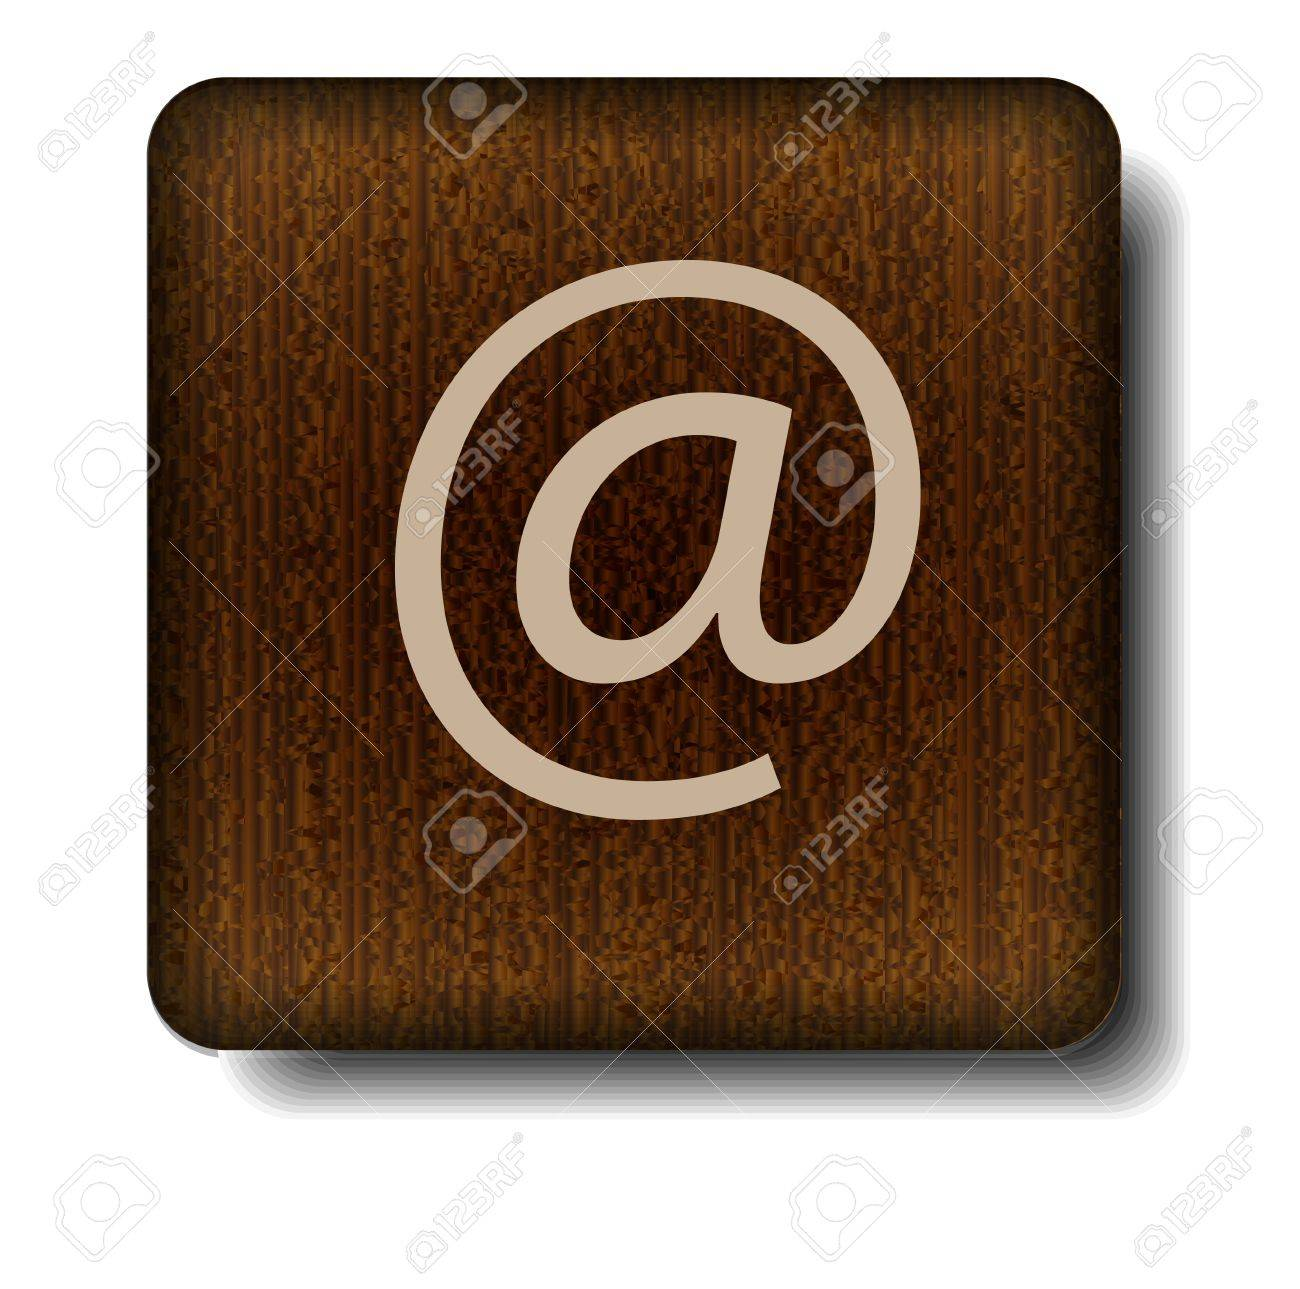 E-mail icon Stock Vector - 14854865